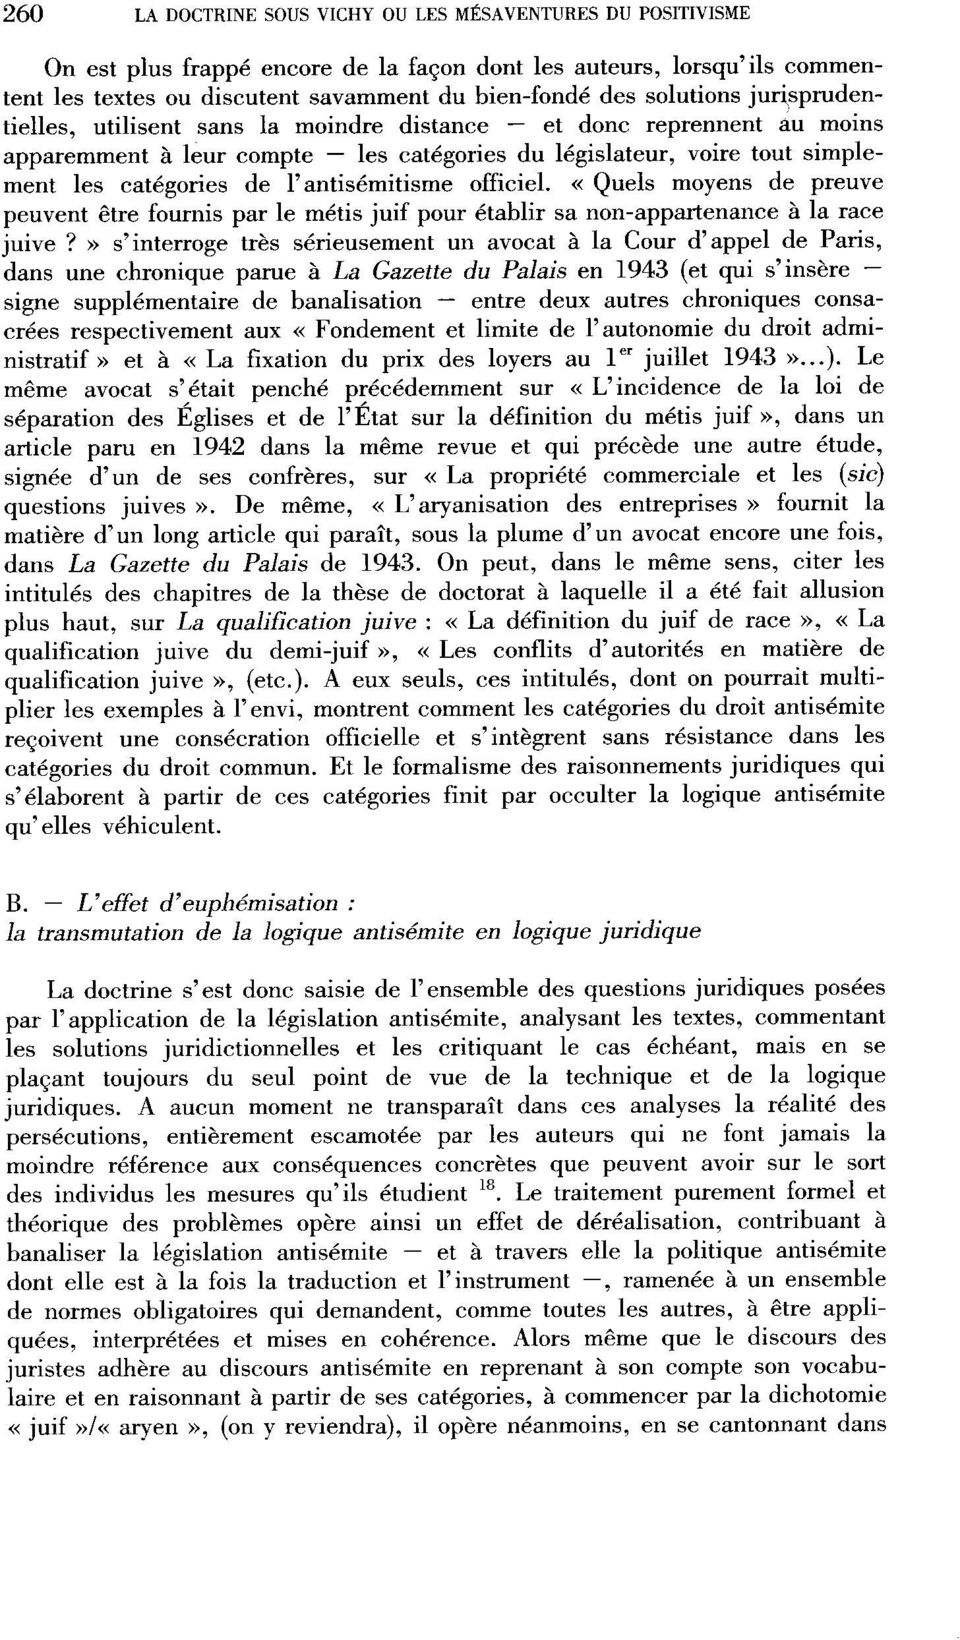 l'antisémitisme officiel. < Quels moyens de preuve peuvent être fournis par le métis juif pour établir sa non-appartenance à la race juive?